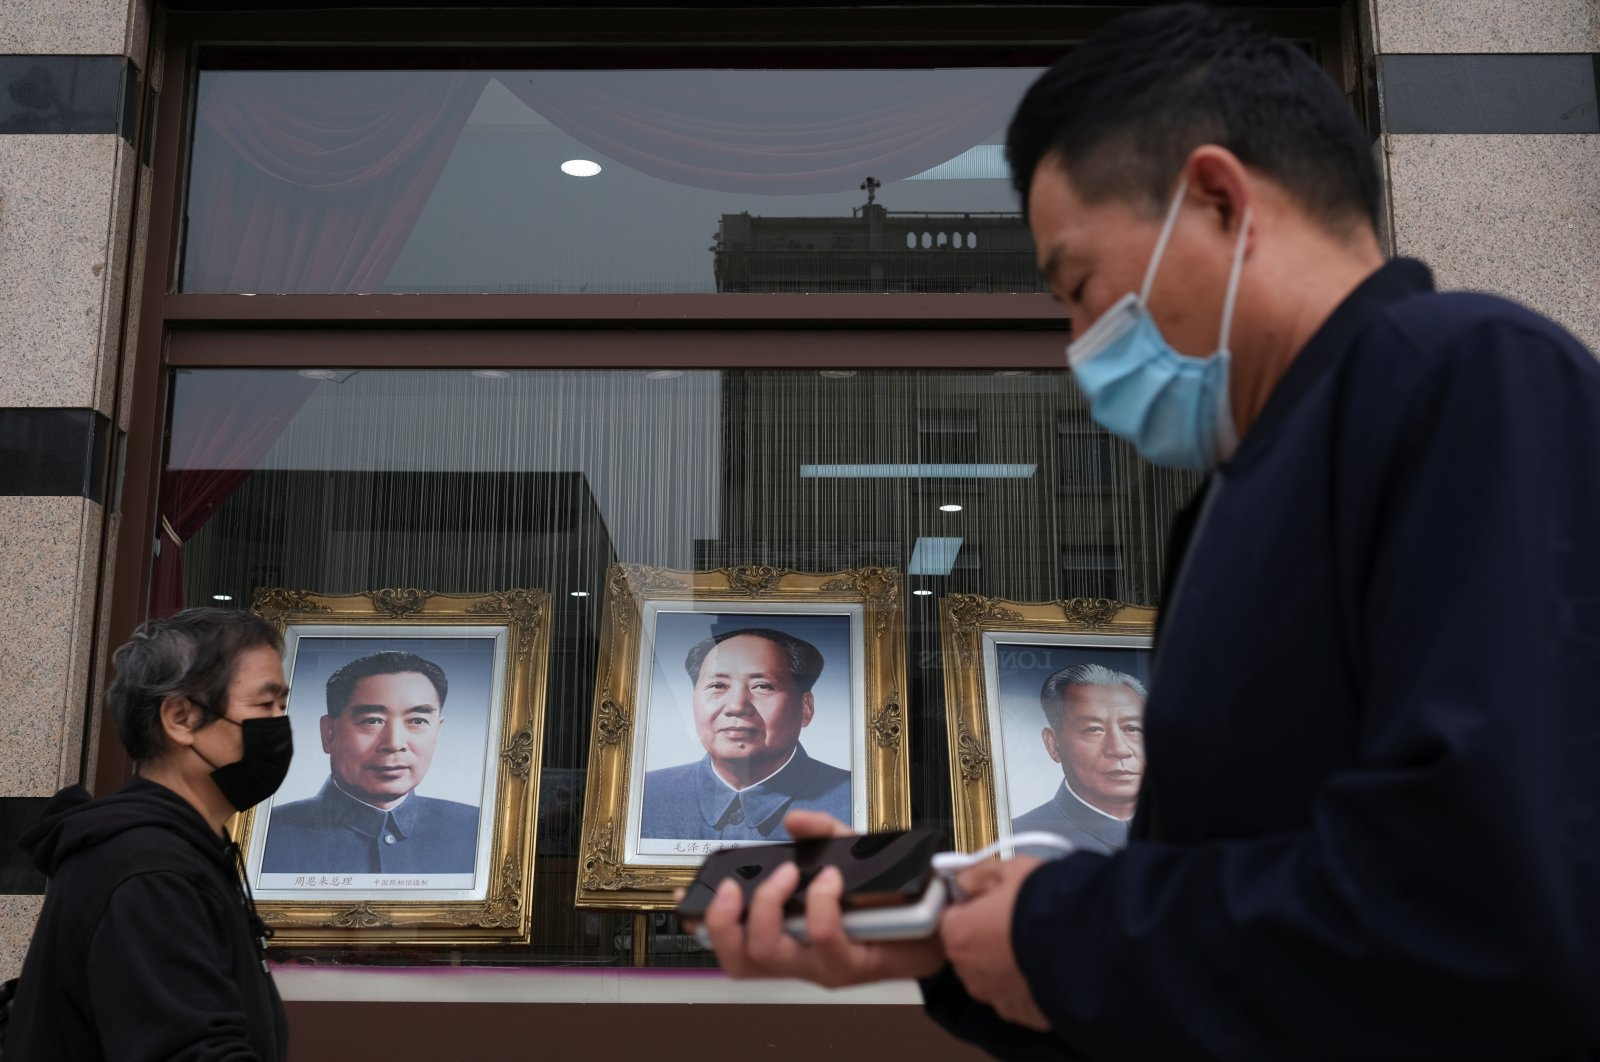 People wearing face masks walk past portraits of late Chinese Communist Party leaders (L-R) Zhou Enlai, Mao Zedong and Liu Shaoqi at Wangfujing street, following an outbreak of the coronavirus disease (COVID-19), in Beijing, China, May 7, 2020. (Reuters Photo)